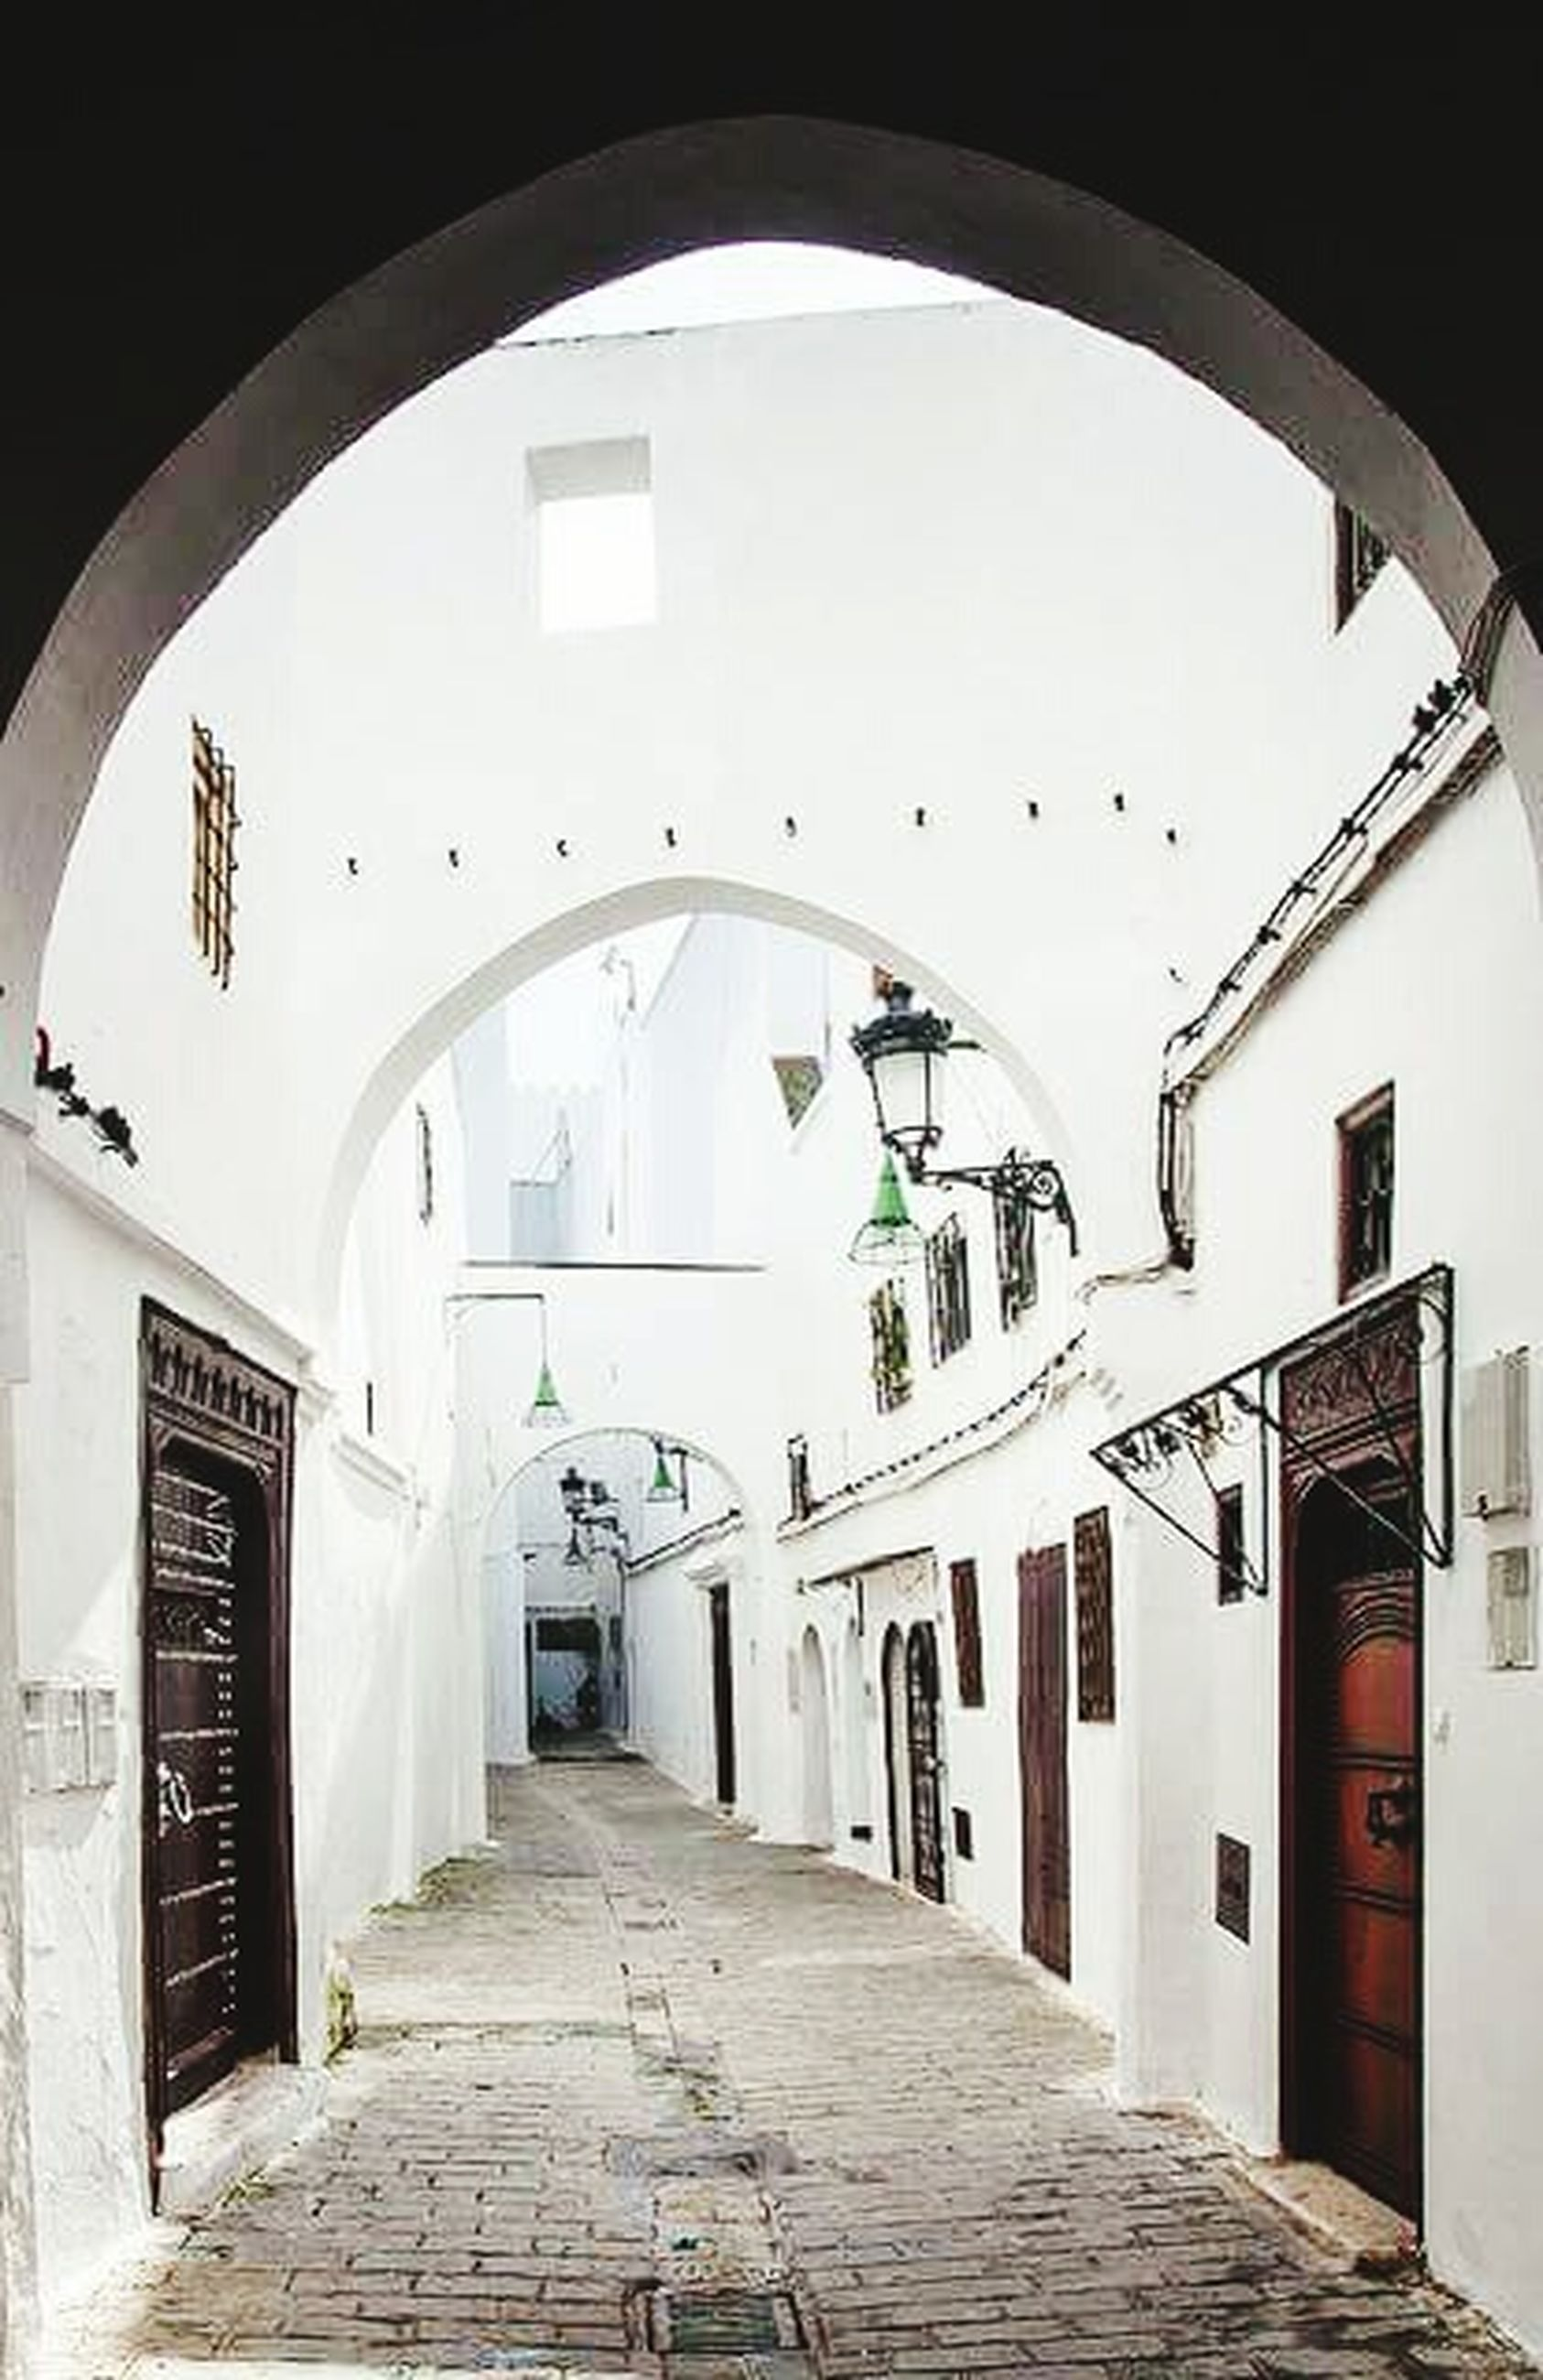 architecture, built structure, the way forward, arch, building exterior, narrow, archway, diminishing perspective, alley, empty, building, indoors, entrance, door, residential structure, vanishing point, corridor, walkway, cobblestone, day